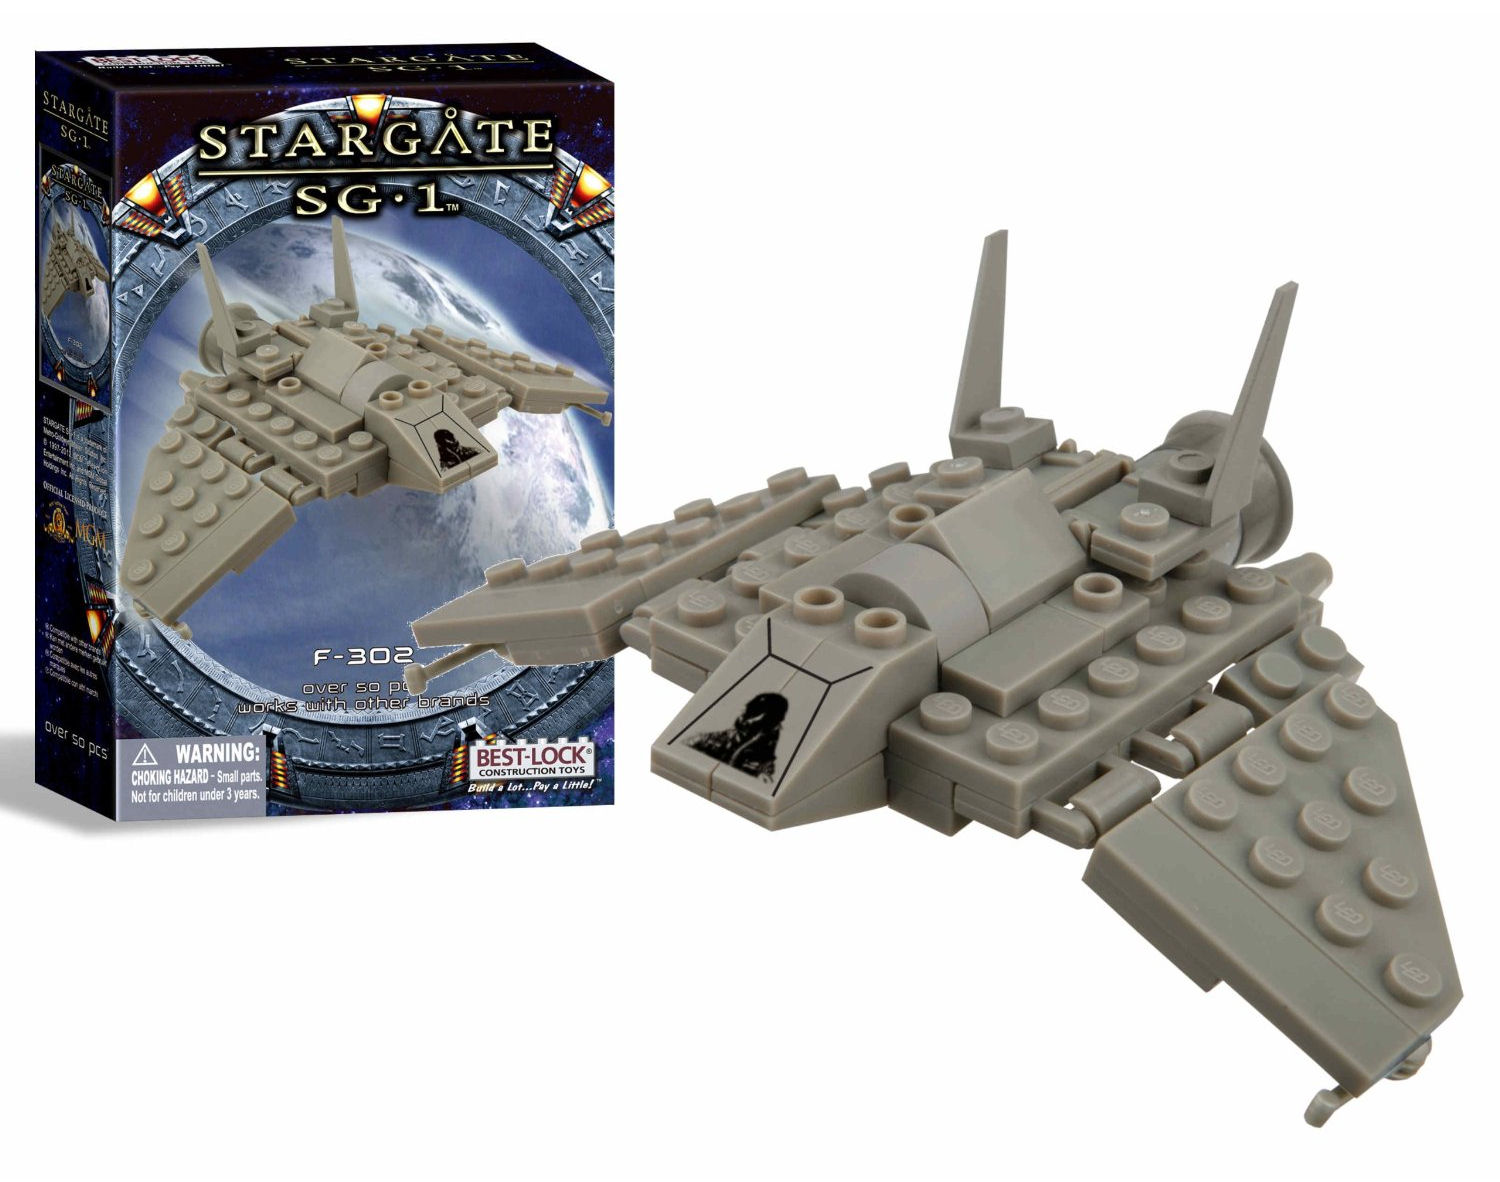 Trek Collective Multiverse: More Stargate sets from Best Lock